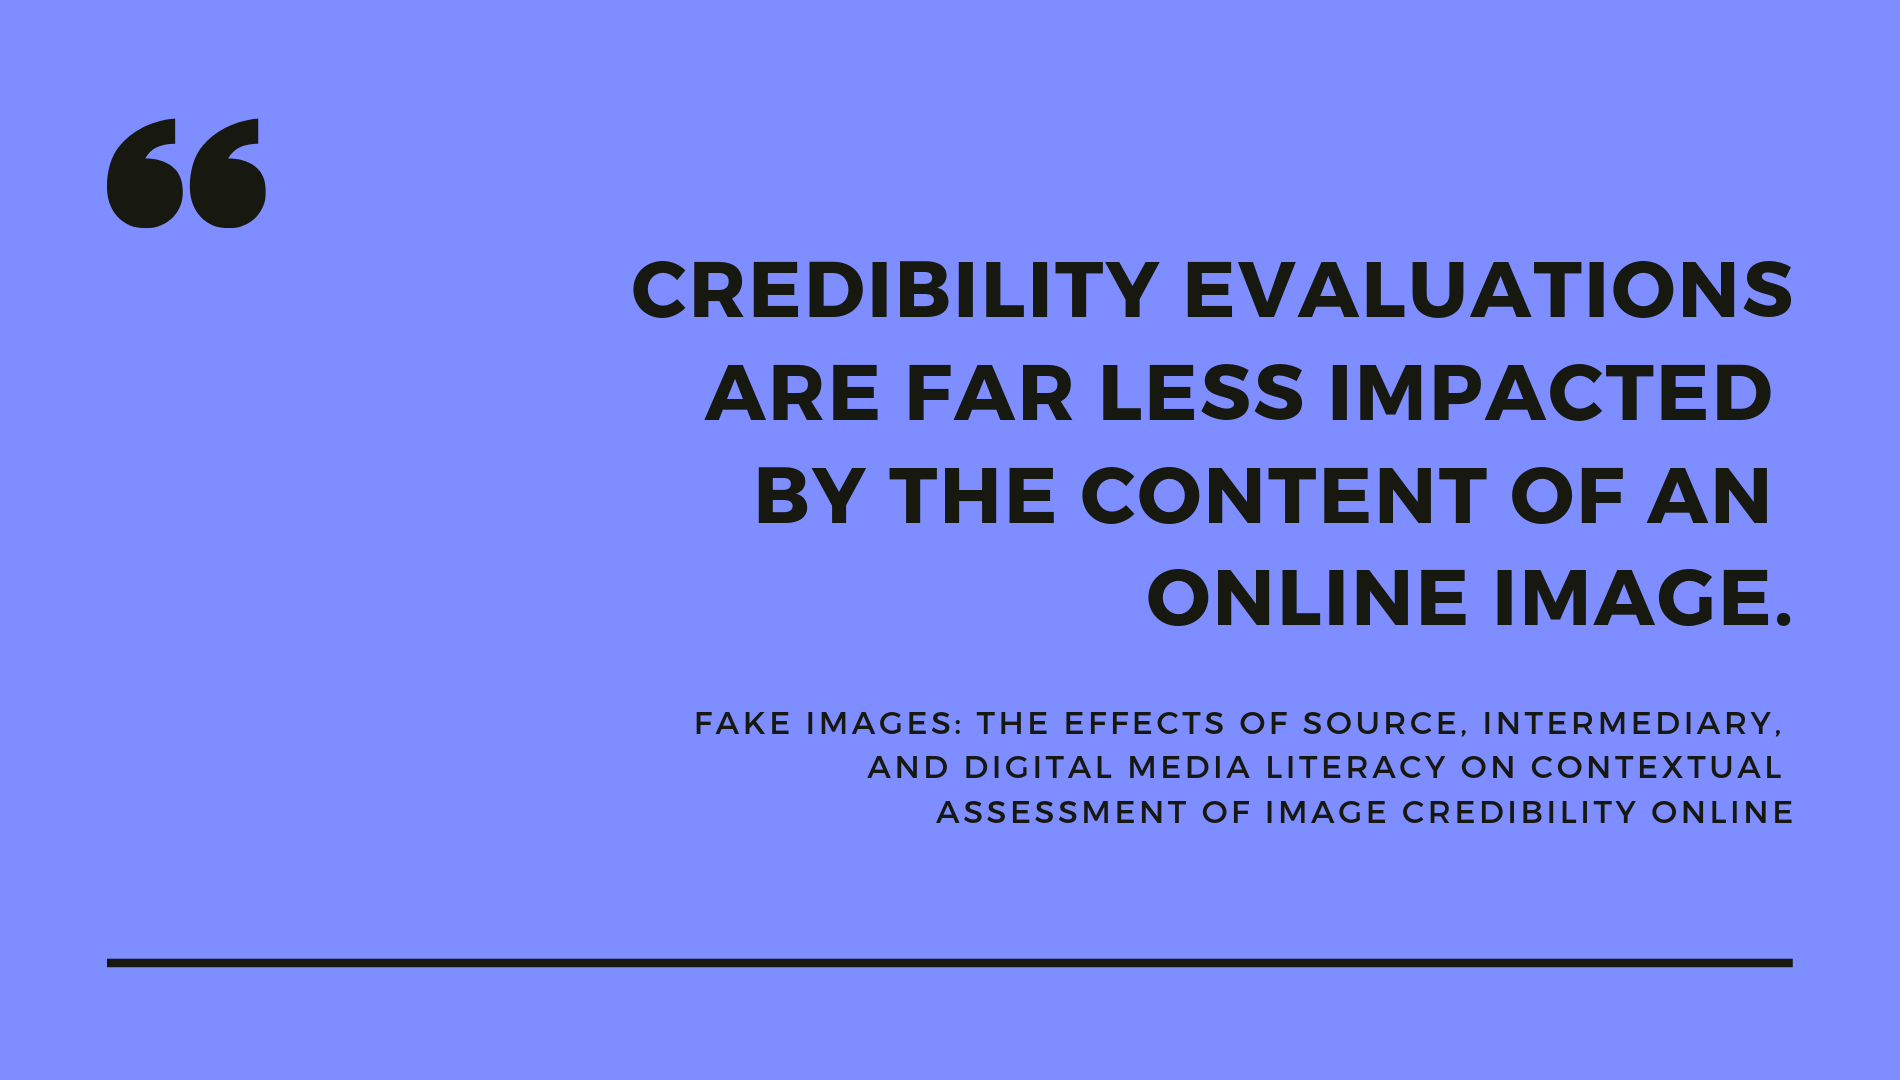 Media literacy, photography skills — not content — matter most when IDing fake images